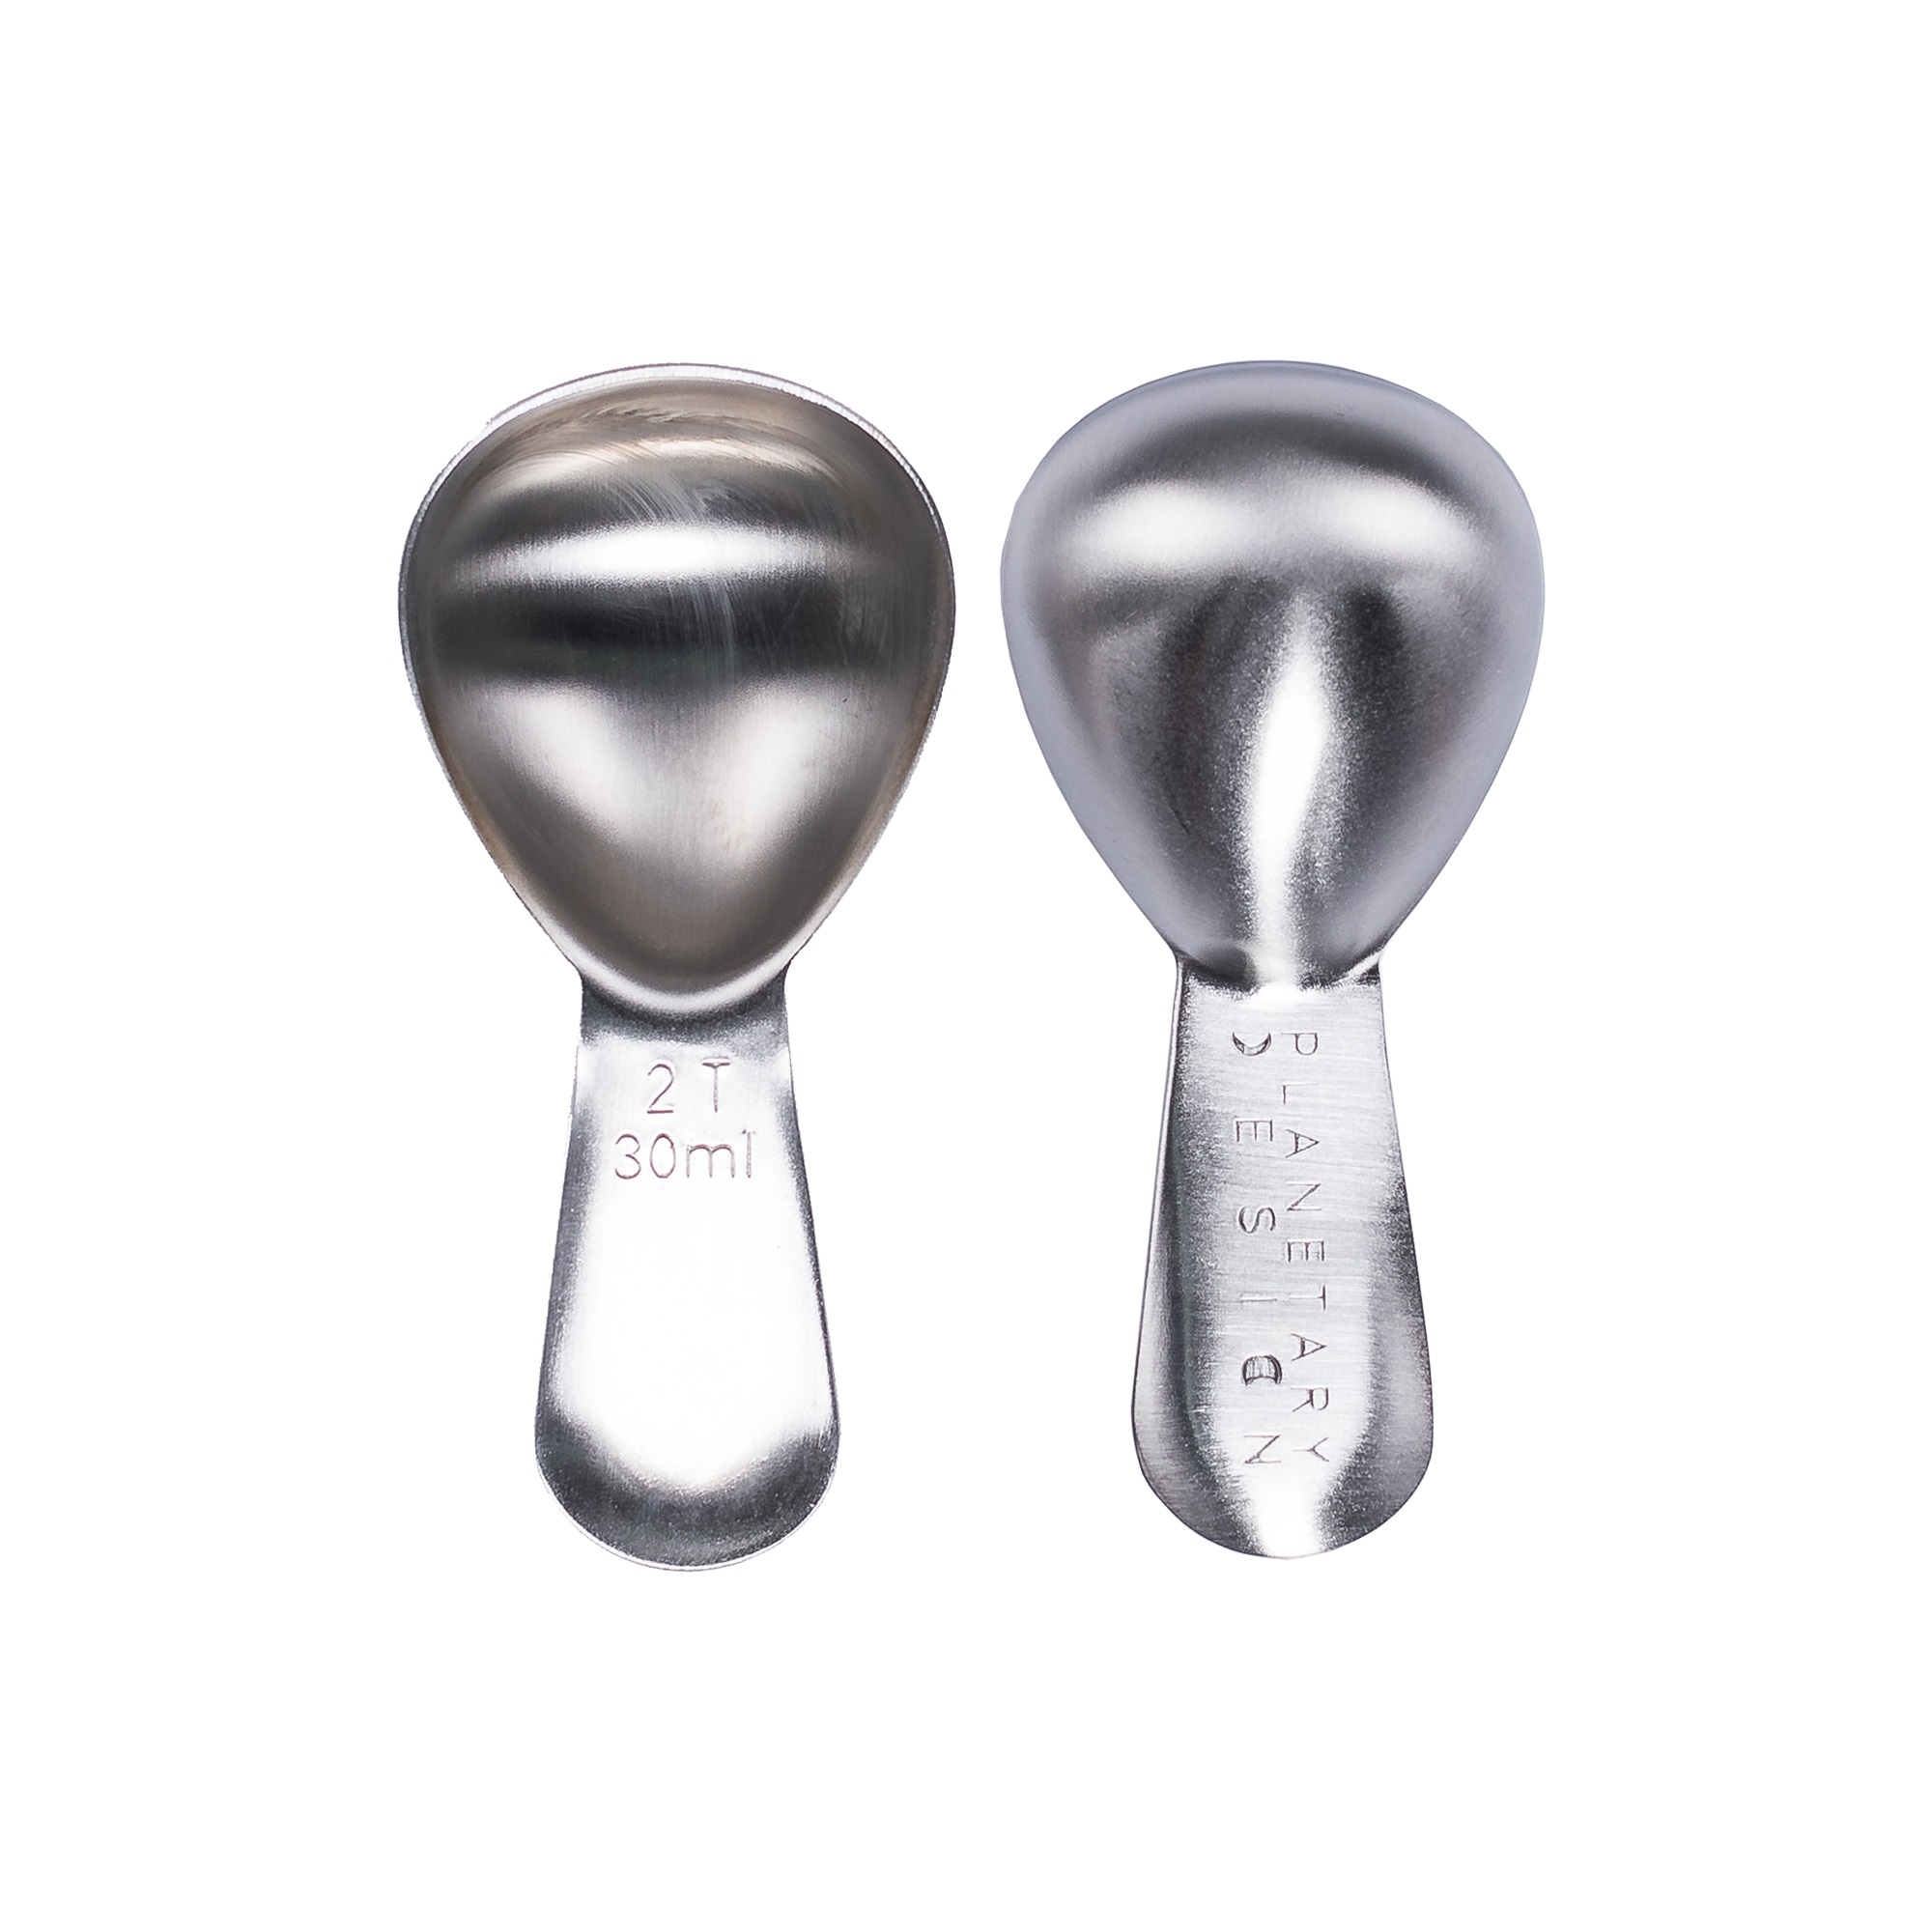 Photo of Stainless Steel Coffee Scoop showing top and bottom of scoop next to each other